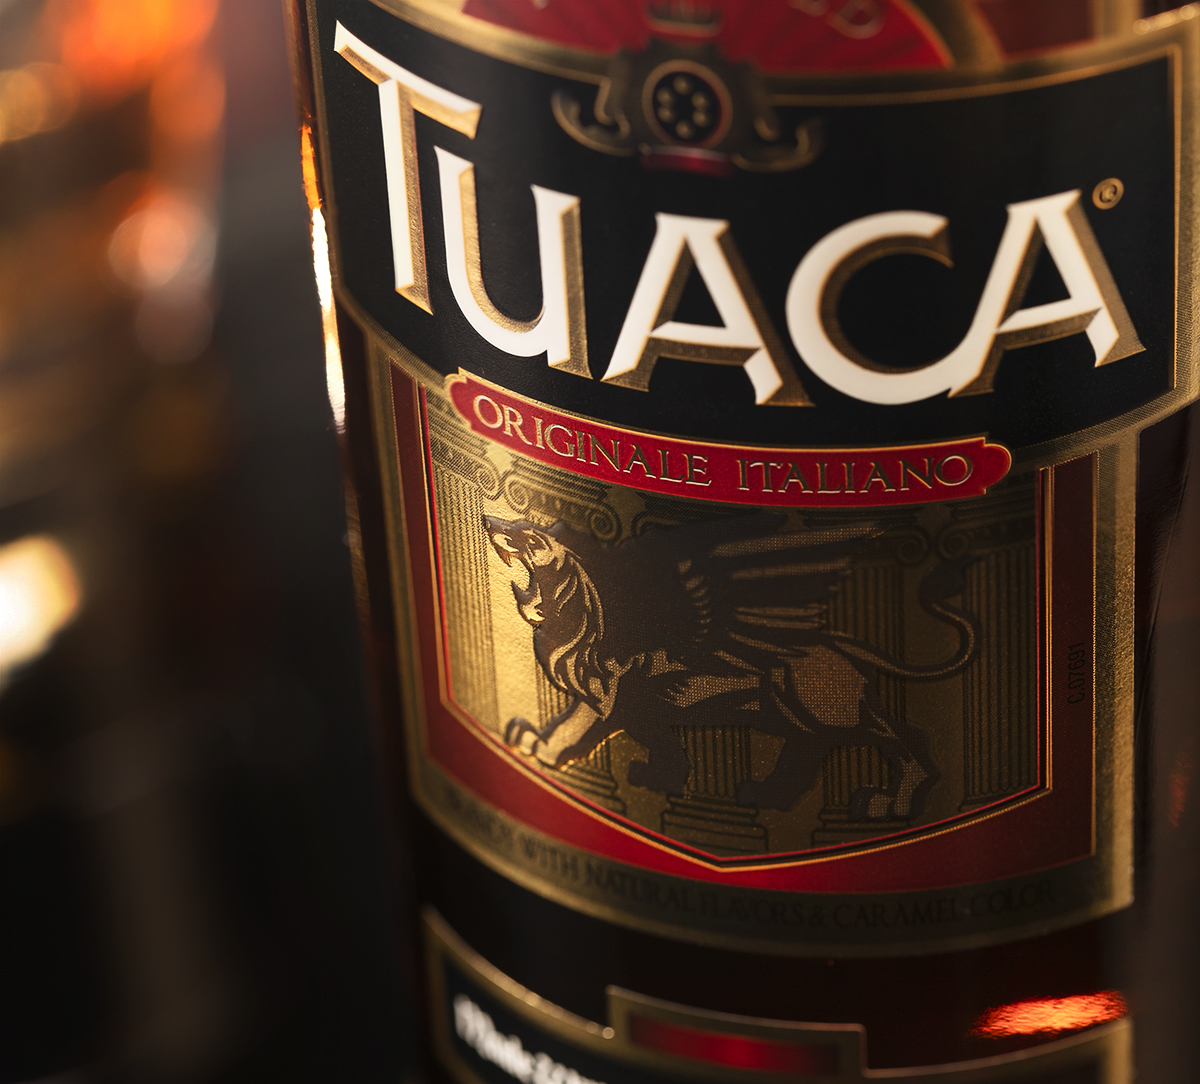 Sometimes, everything you want is right in front of you.  #TuacaAndThen #Tuaca https://t.co/ZkRHoCCnwx